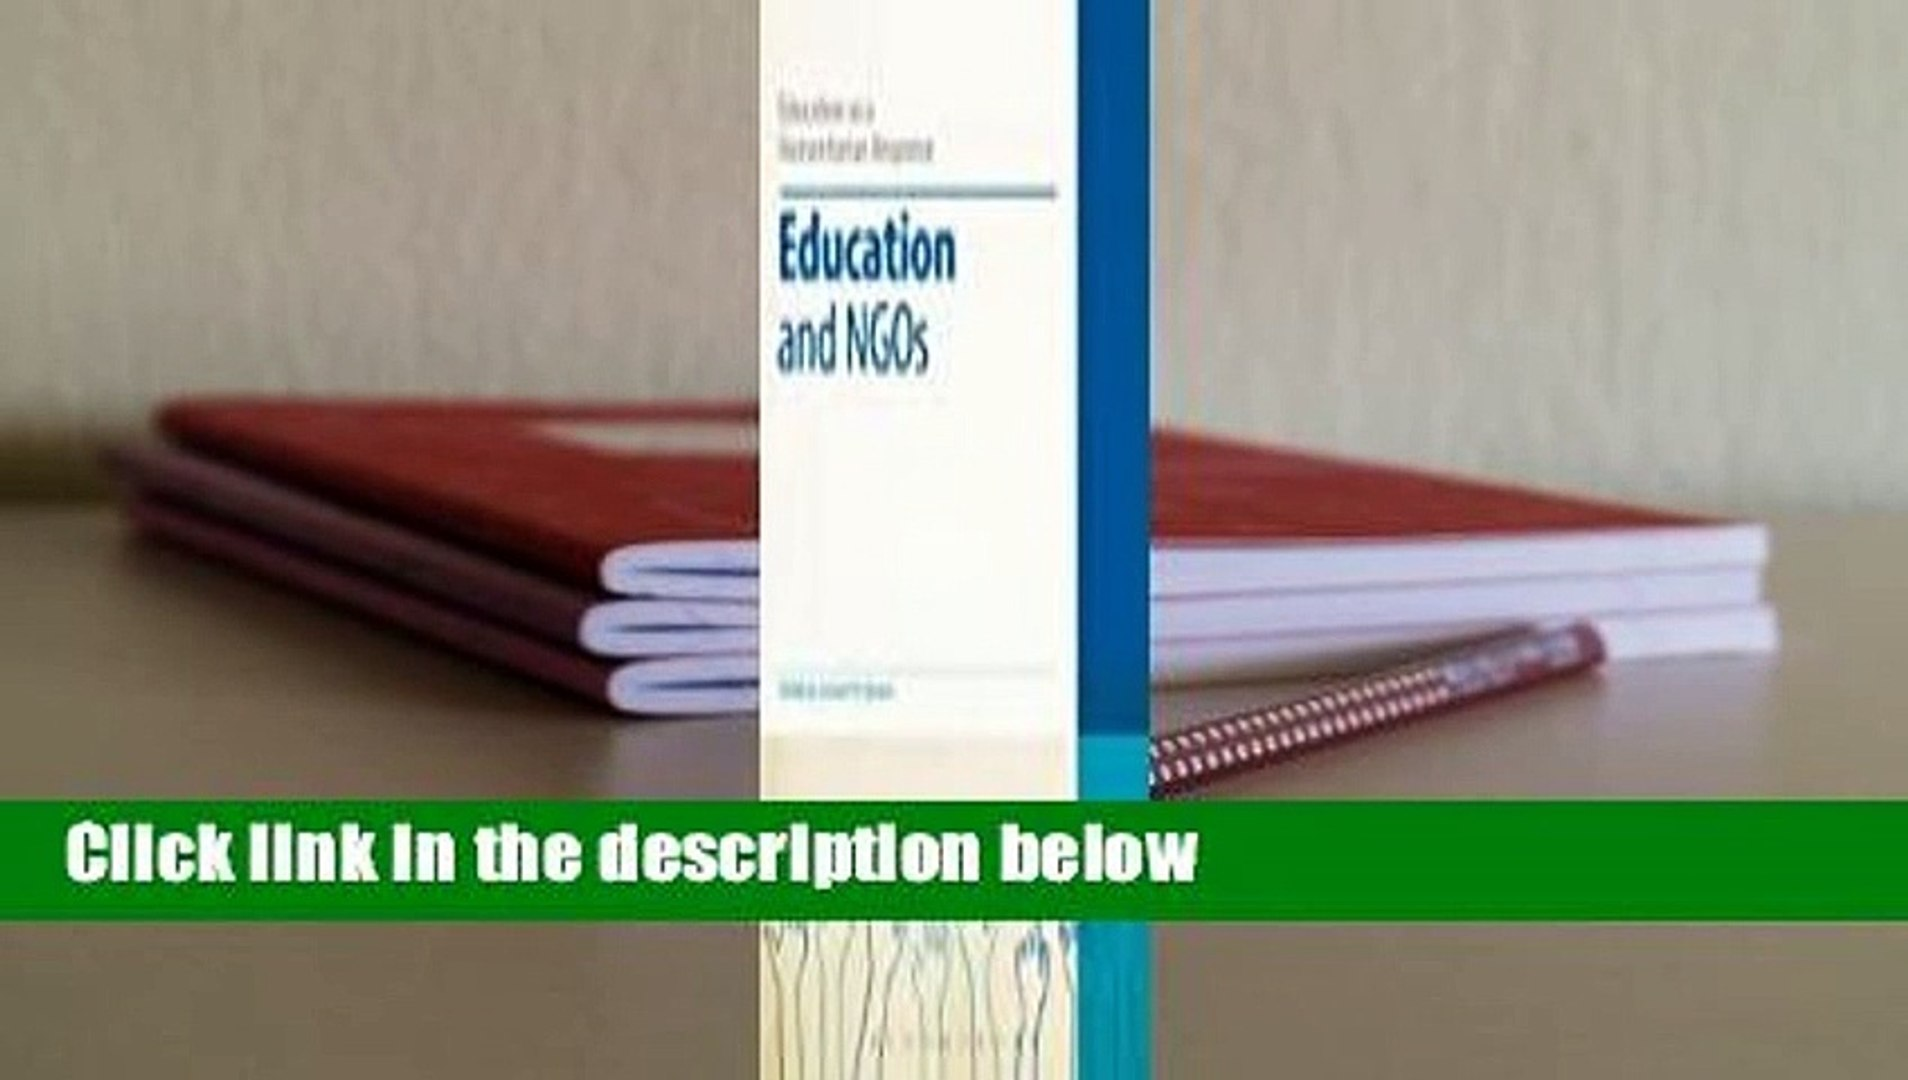 Education and NGOs  For Kindle